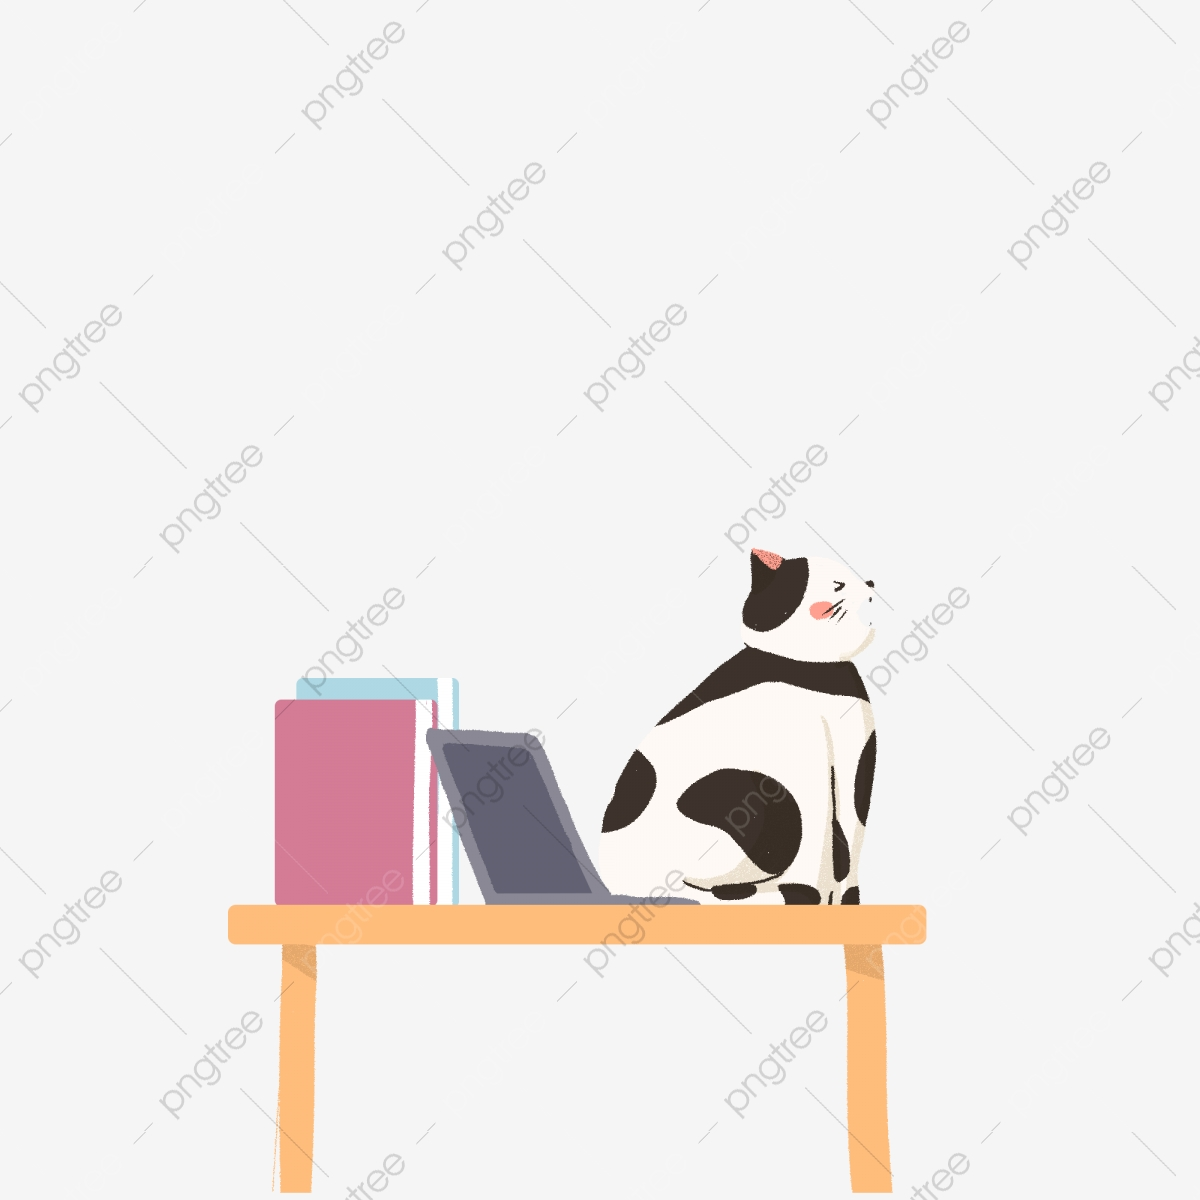 Cartoon Office Desktop And Cat Free Clipart Electronic Computer Books Desk Png Transparent Clipart Image And Psd File For Free Download